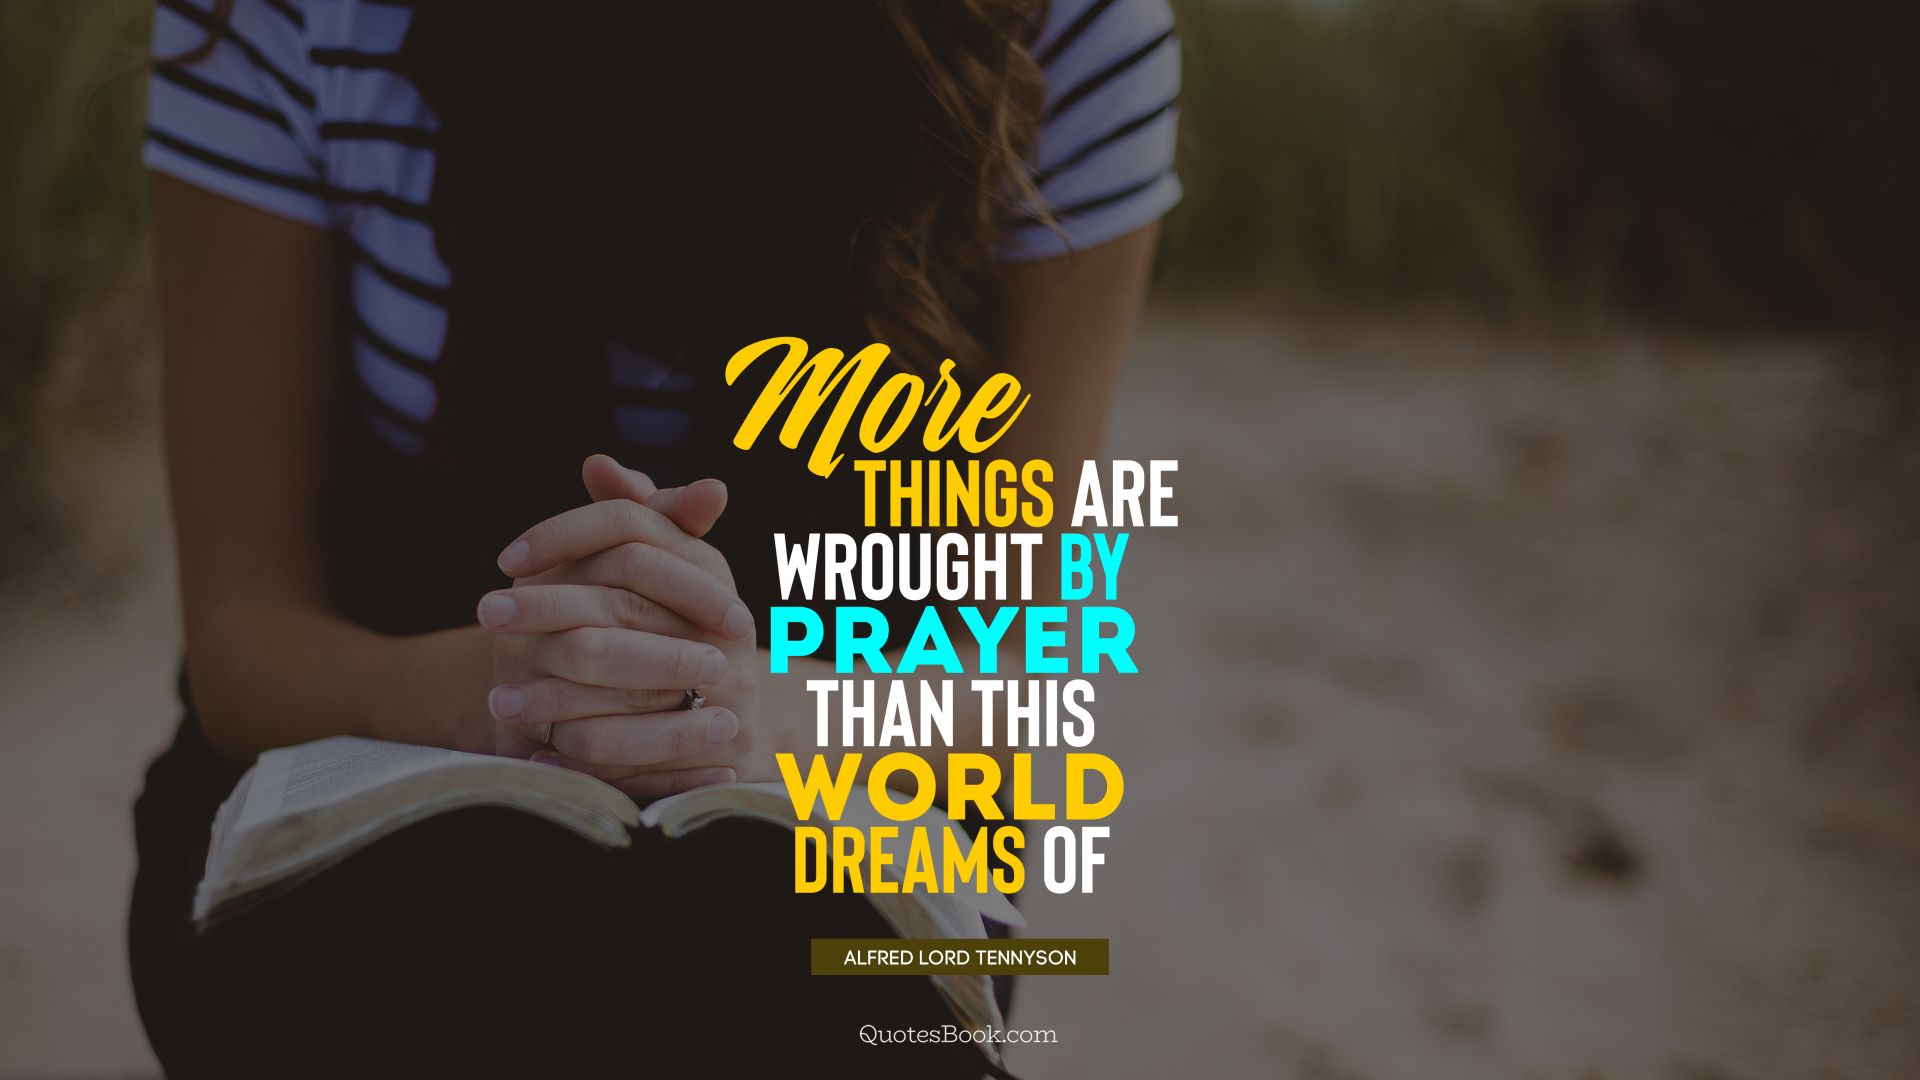 More things are wrought by prayer than this world dreams of. - Quote by Alfred Lord Tennyson